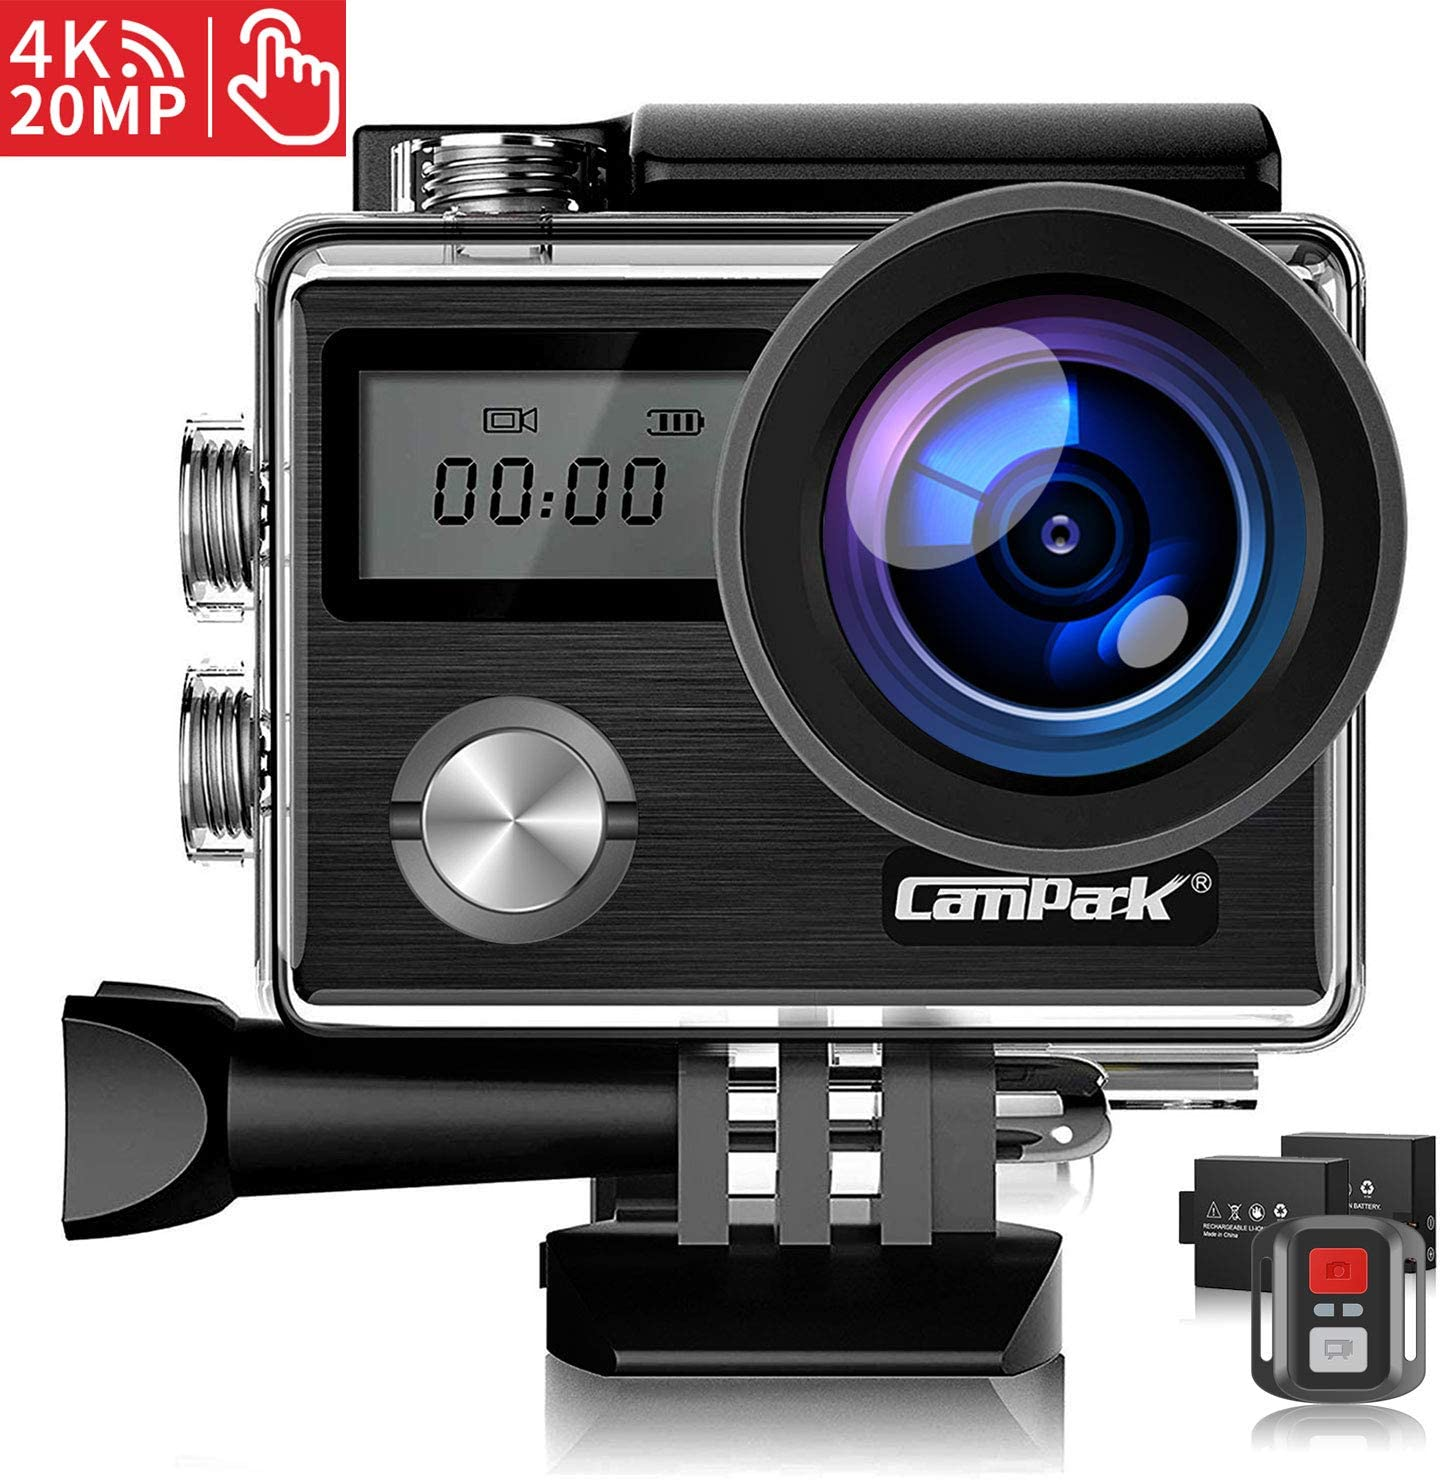 【Upgrade】 Campark X20 Action Camera Native 4K Ultra HD 20MP with EIS Stablization Touch Screen Remote Control Waterproof Camera 40M 2 Batteries and Professional Accessories Compatible with gopro 71GU6-EIV9LSL1500_